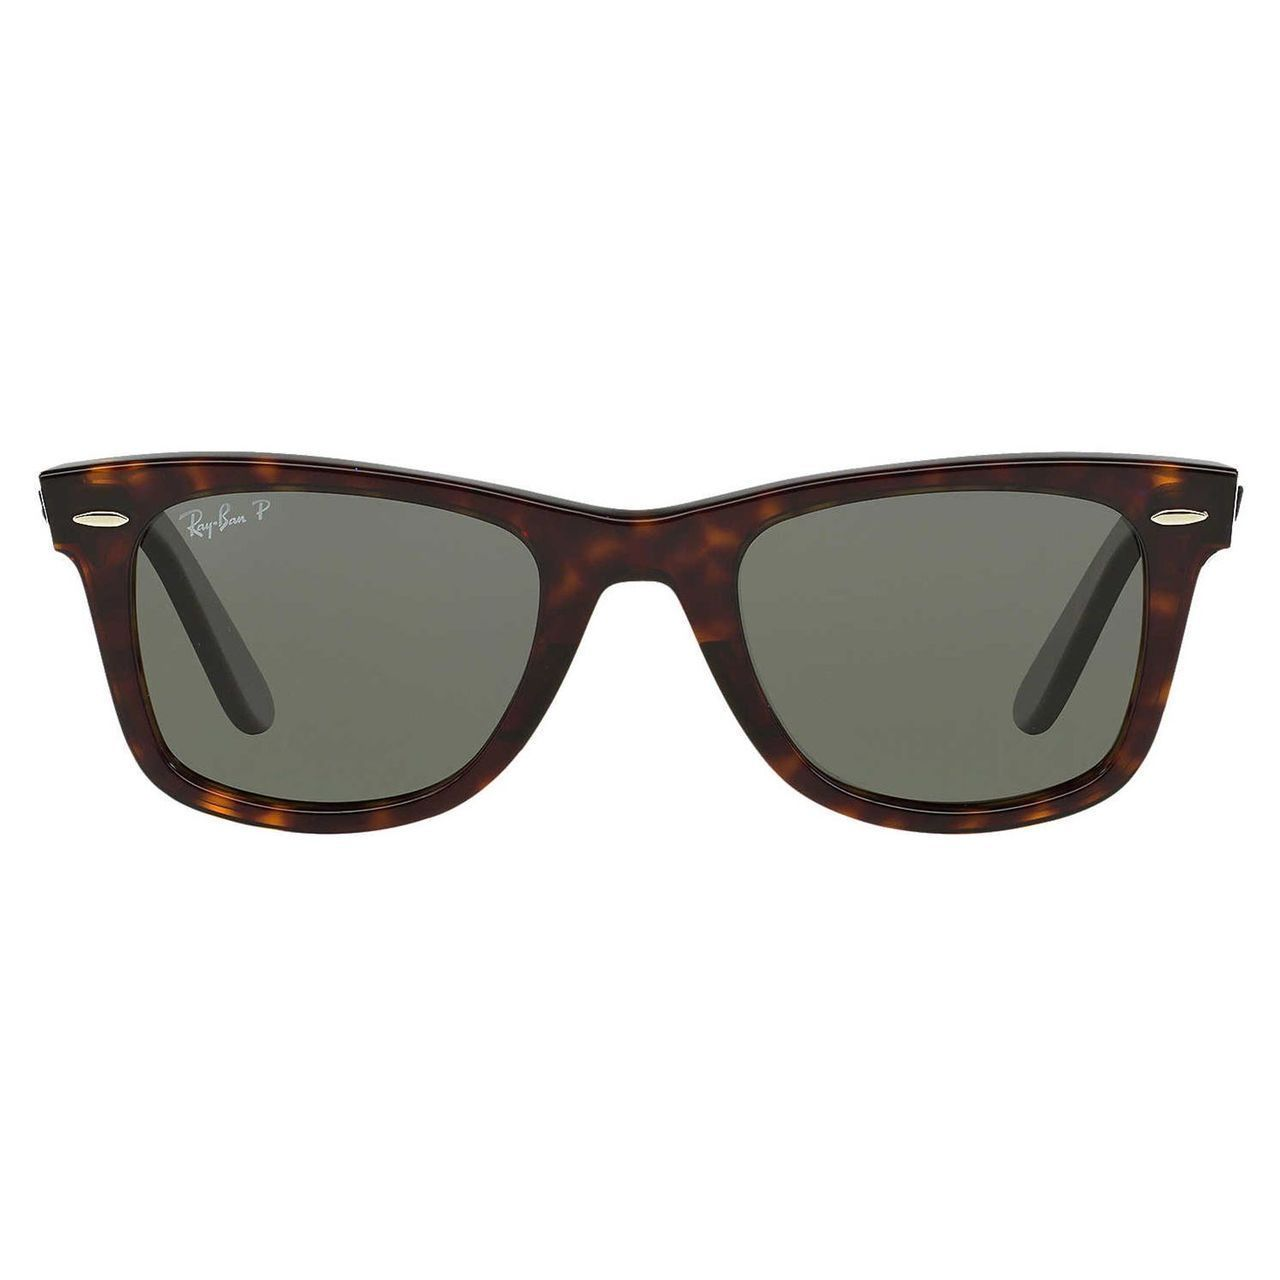 5c60f0ada2 Shop Ray Ban Unisex RB 2140 Original Wayfarer 902 58 Havana Plastic  Polarized 50mm Sunglasses - Free Shipping Today - Overstock - 9990464